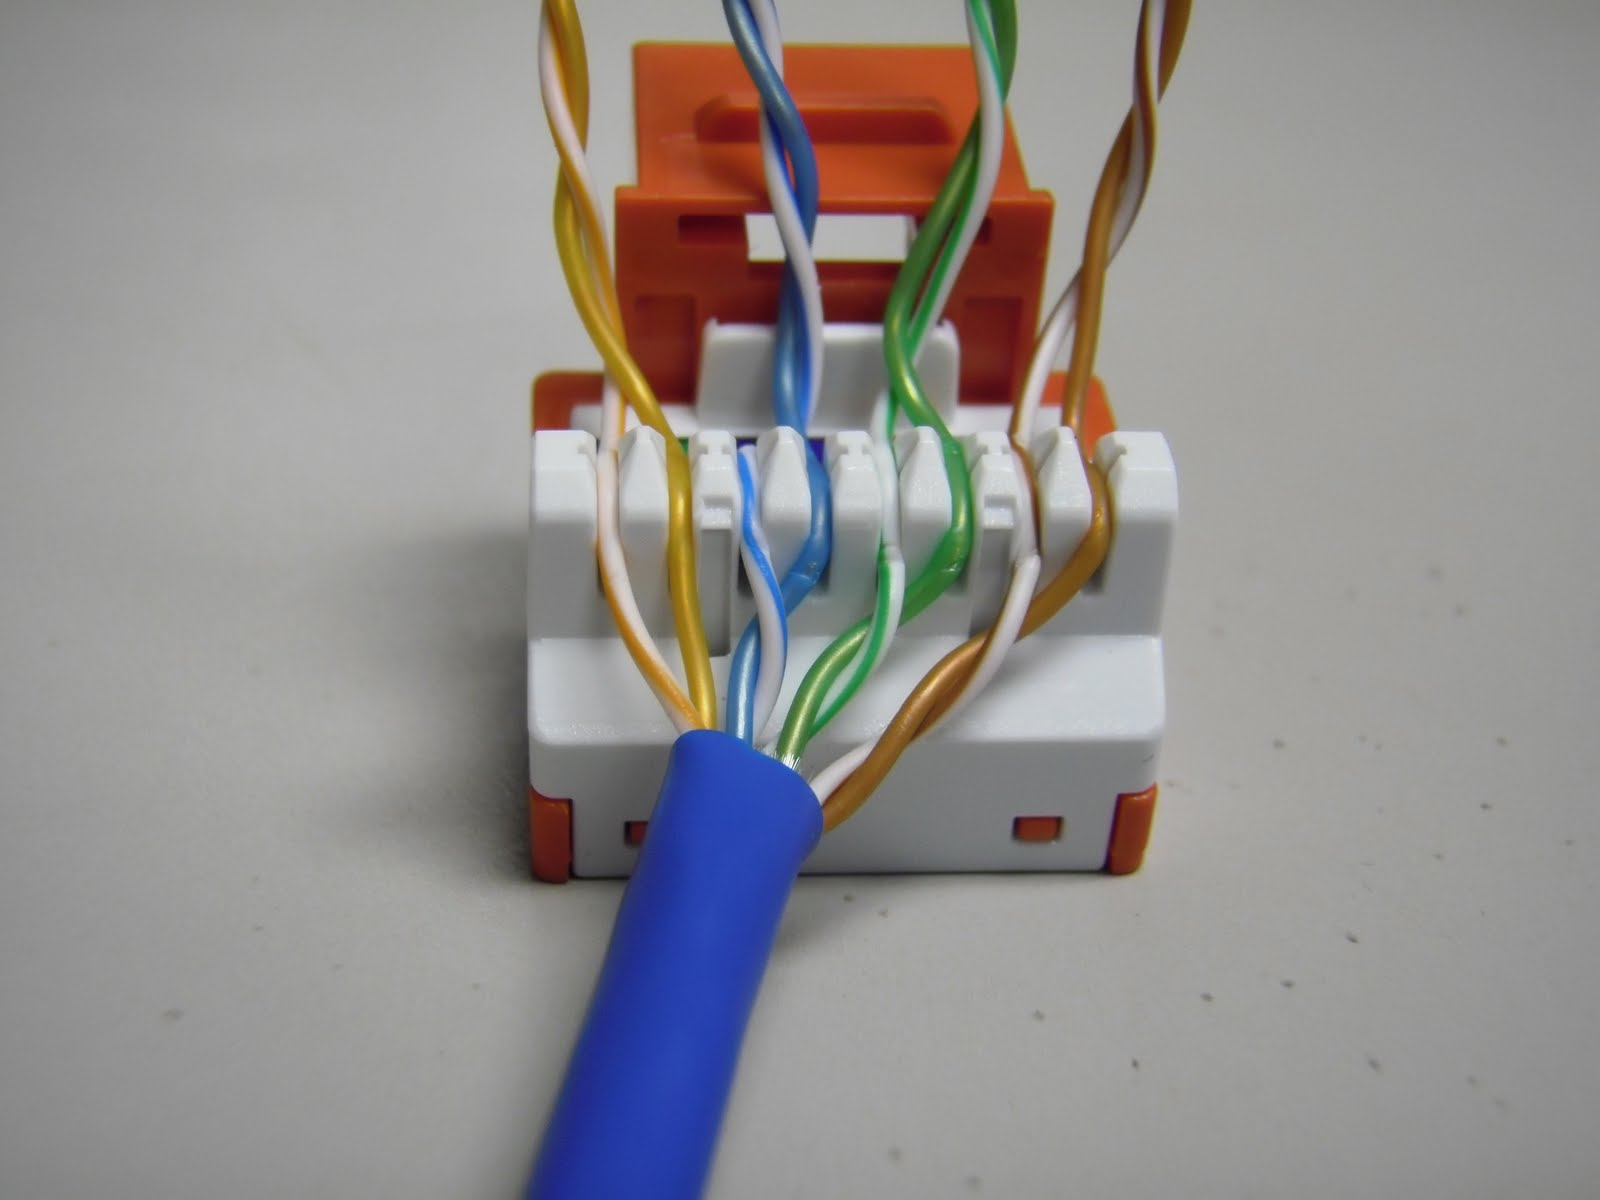 hight resolution of cat5 jack wiring wiring diagram third level jack cat 5 connection diagram diagram cat 5 jacks